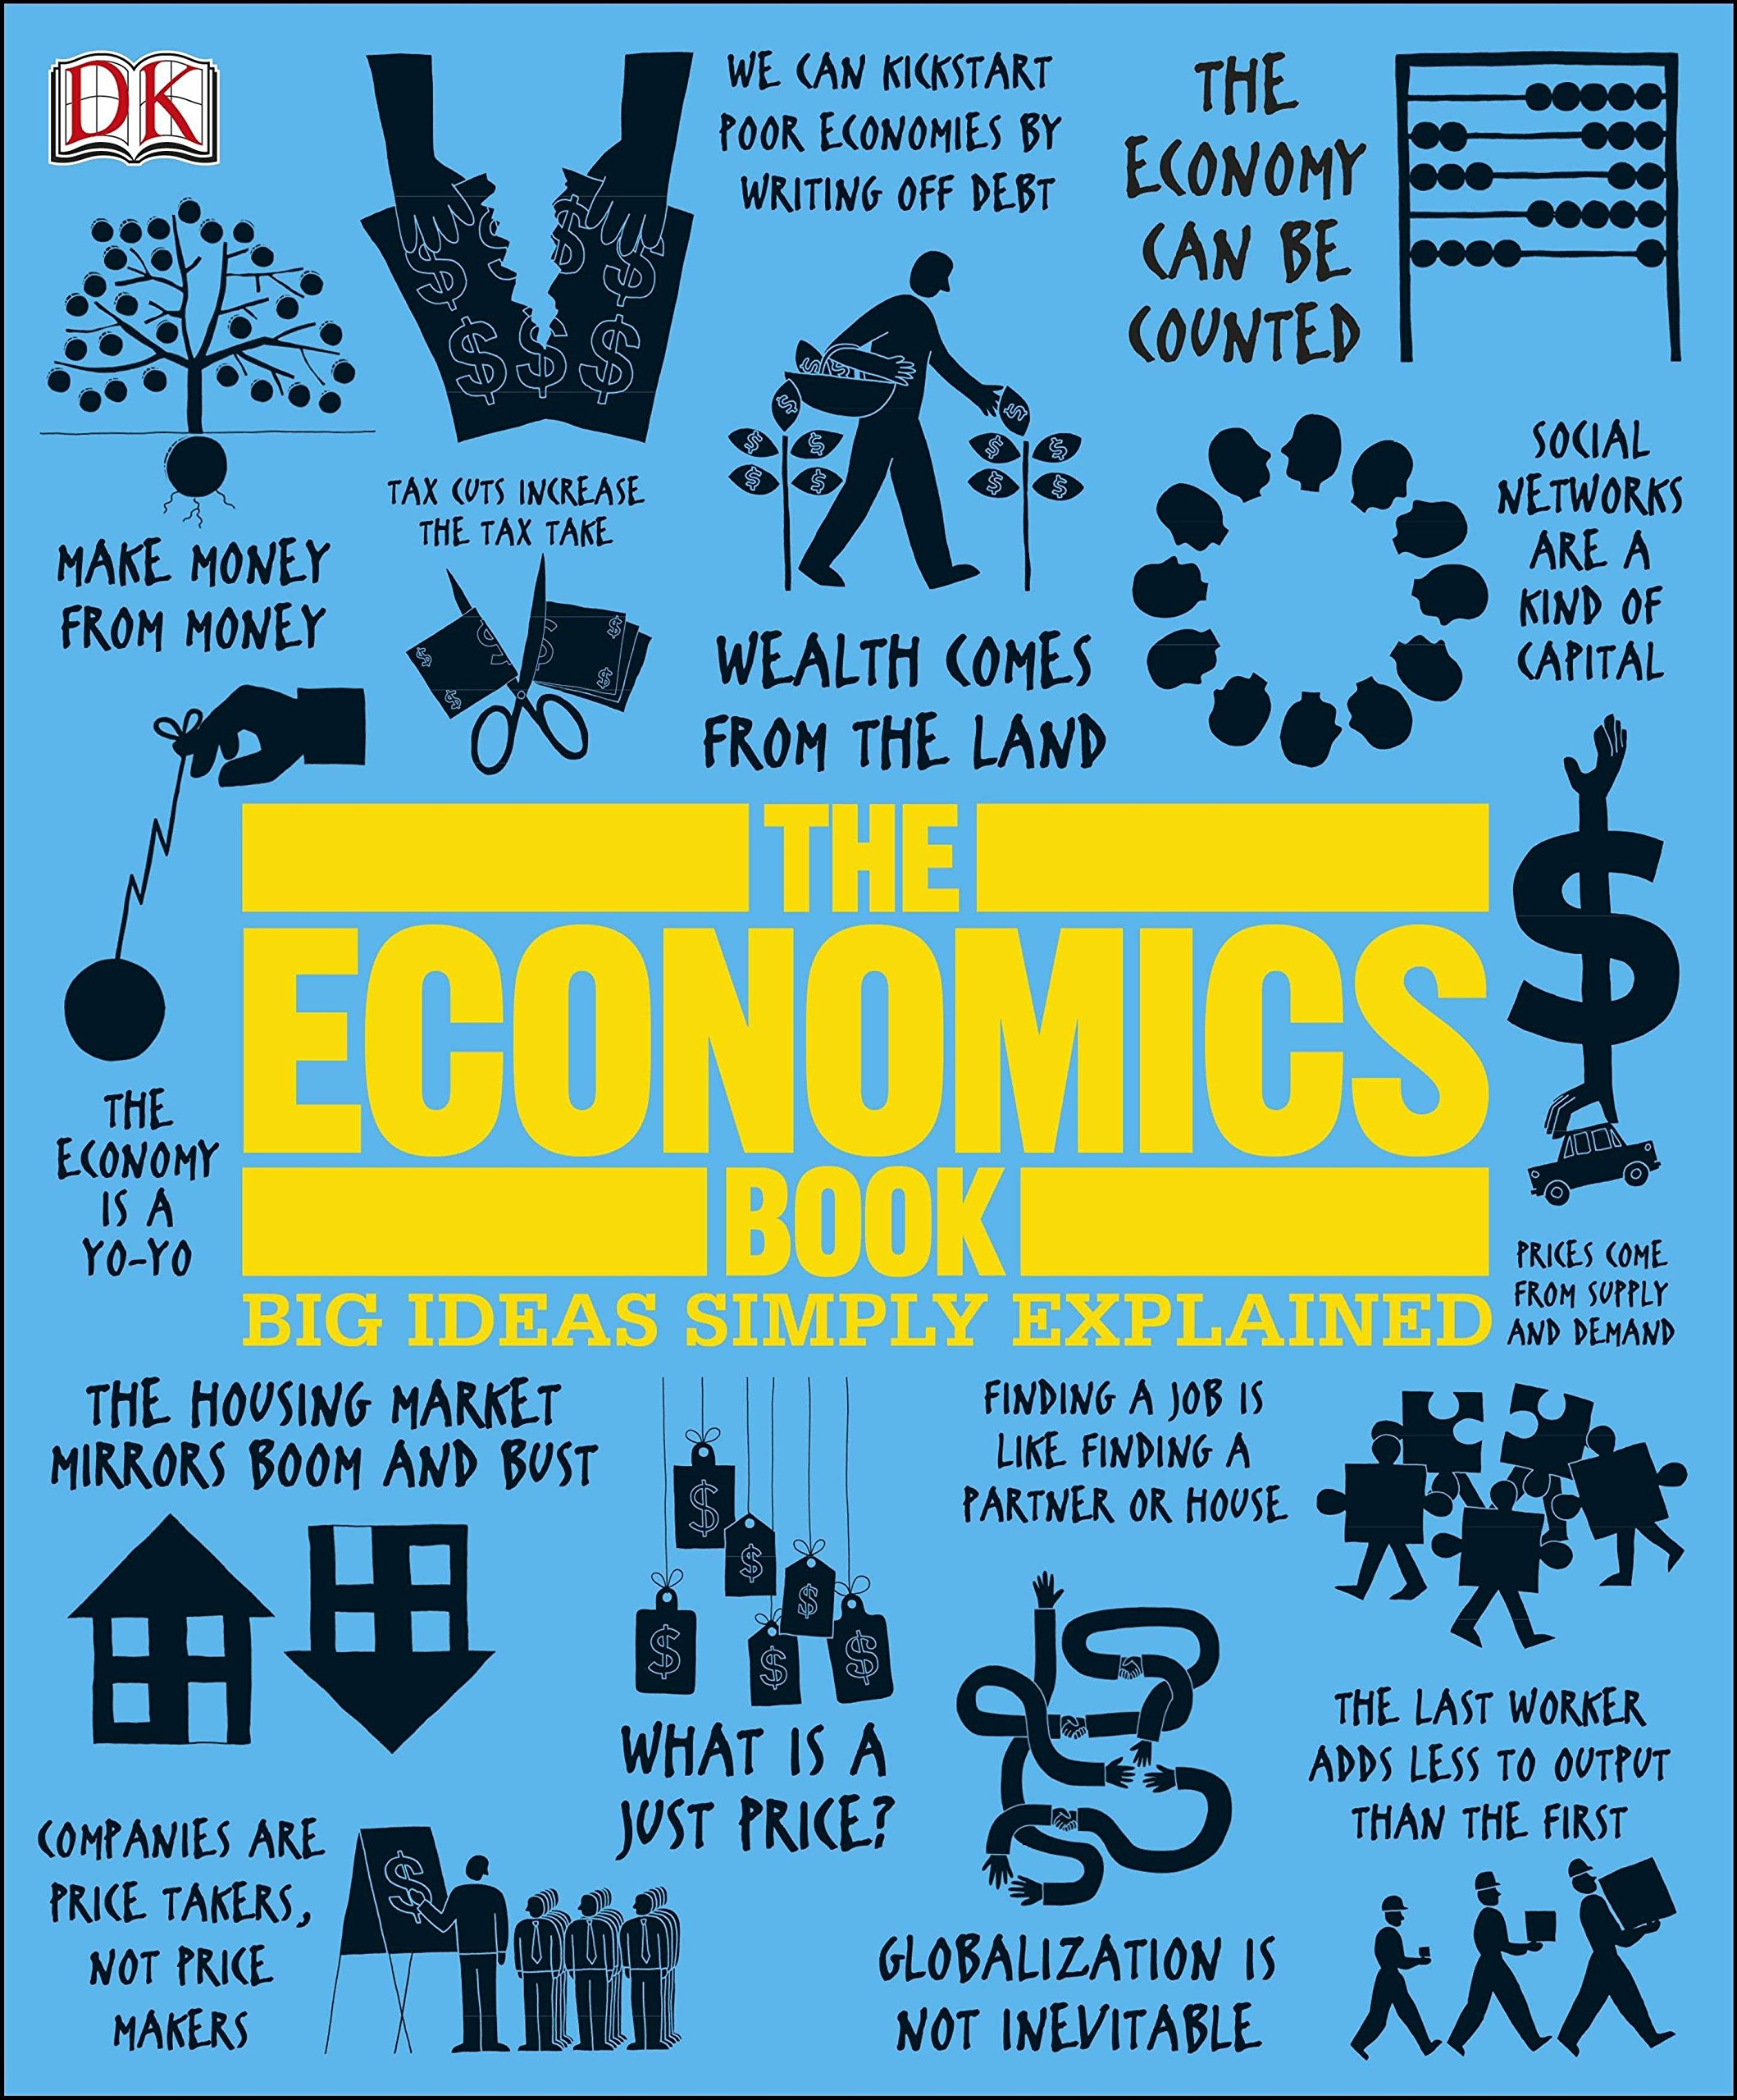 The Economics Book: Big Ideas Simply Explained: DK: 0690472098270 ...